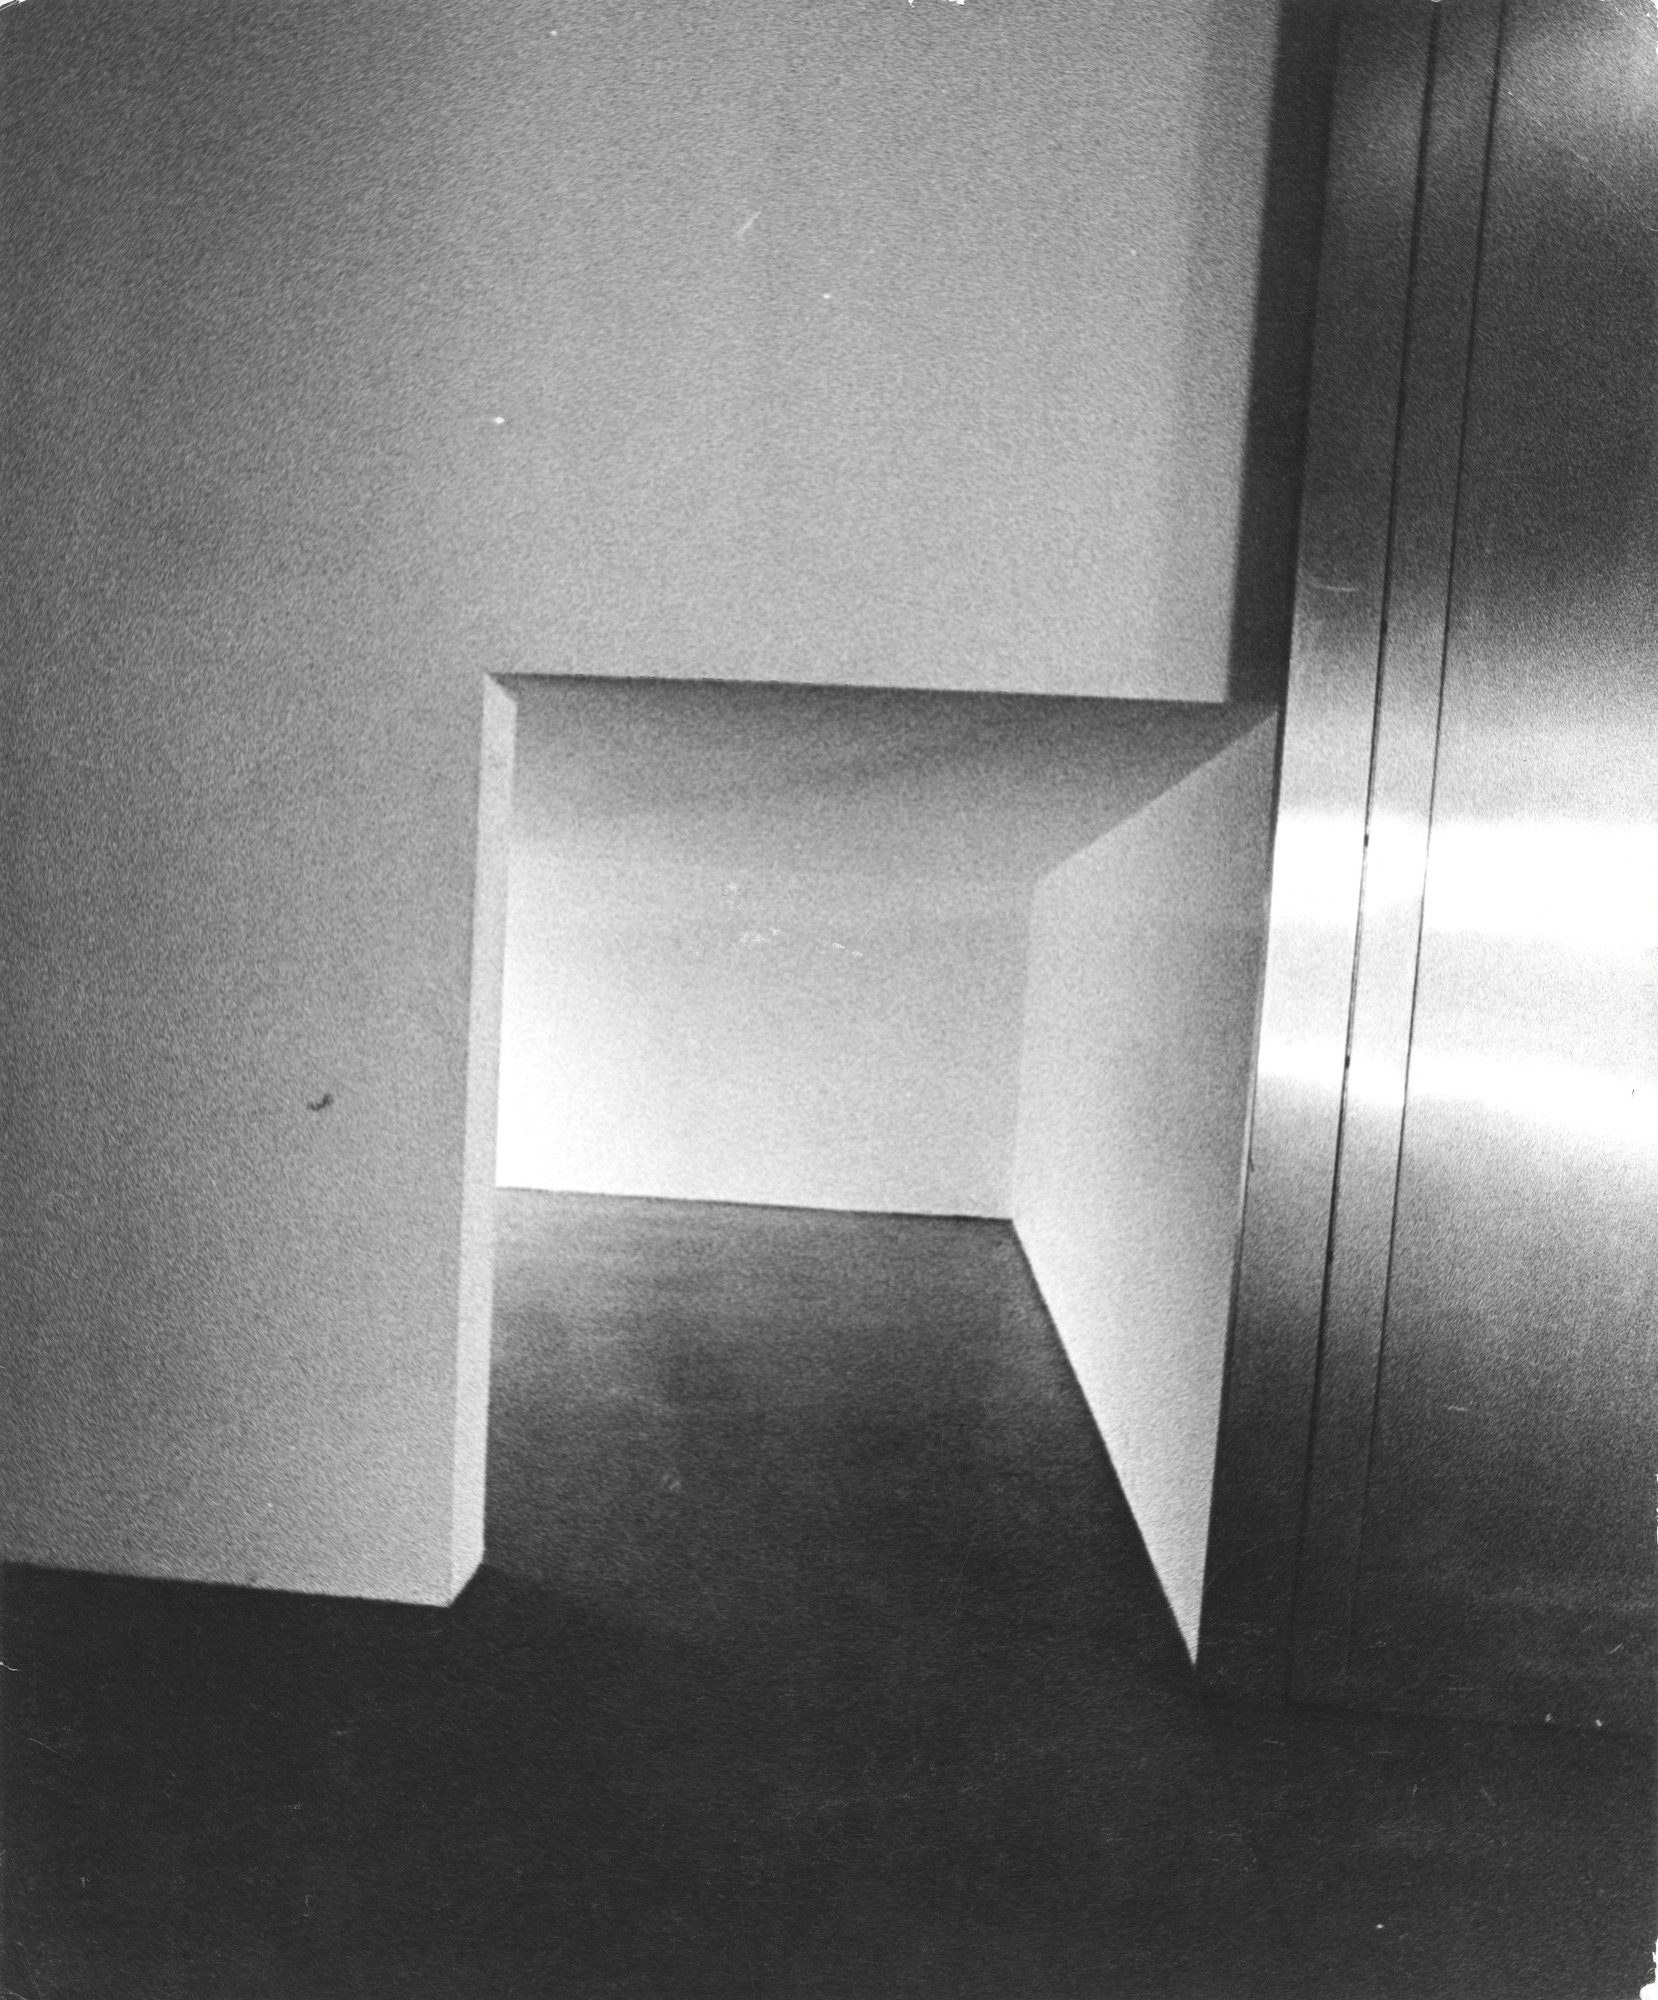 """Entrance to smaller gallery (where camera is located).""  Installation view of the exhibition, ""Projects:  Keith Sonnier"" May 5, 1971–August 2, 1971. The Museum of Modern Art Exhibition Records, 964.8. The Museum of Modern Art Archives, New York. IN964.1. Photograph by Richard ""Dickie"" Landry."